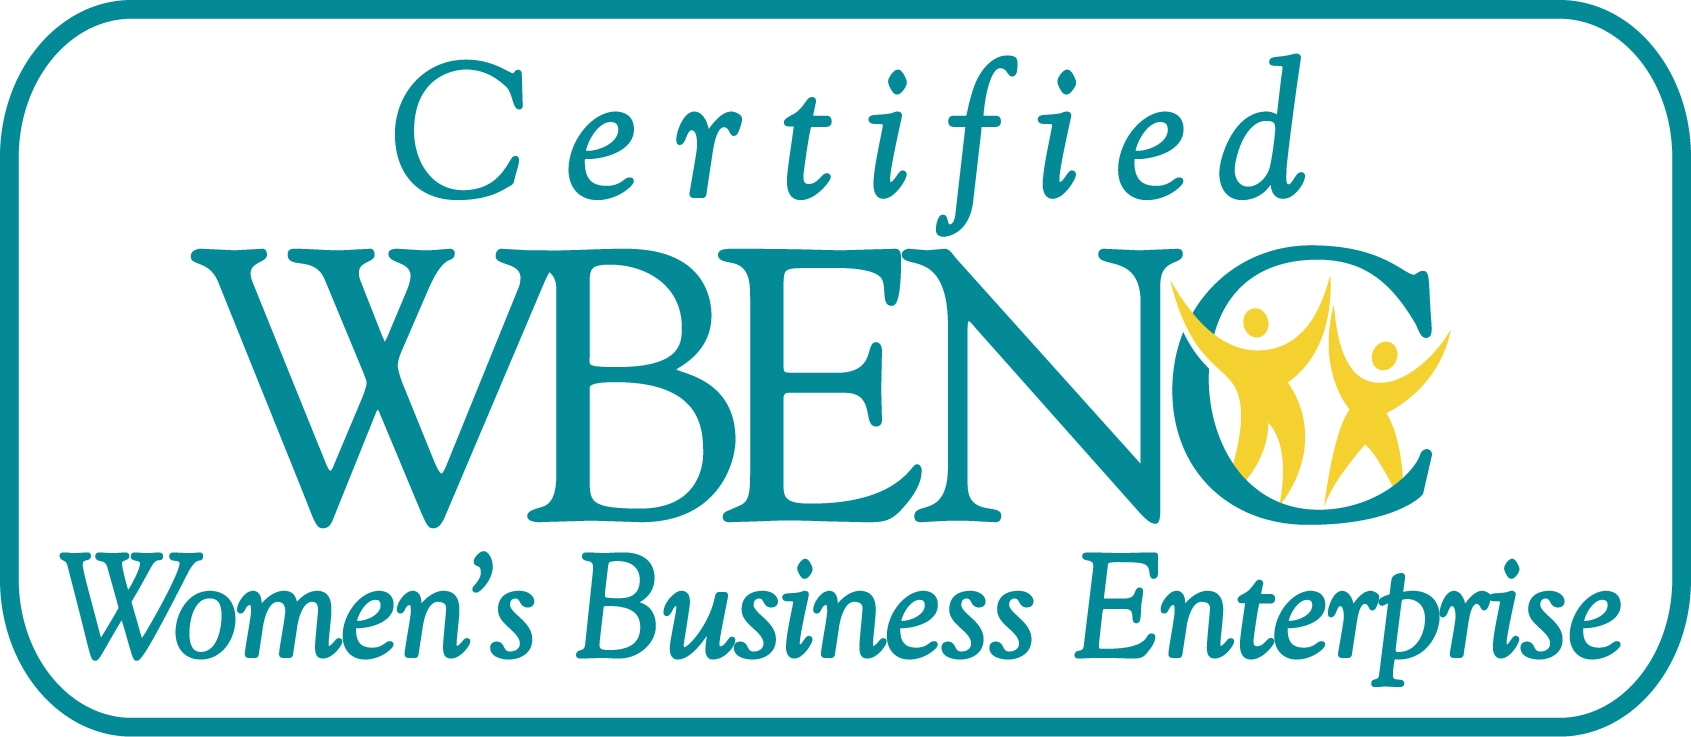 WBE Certification